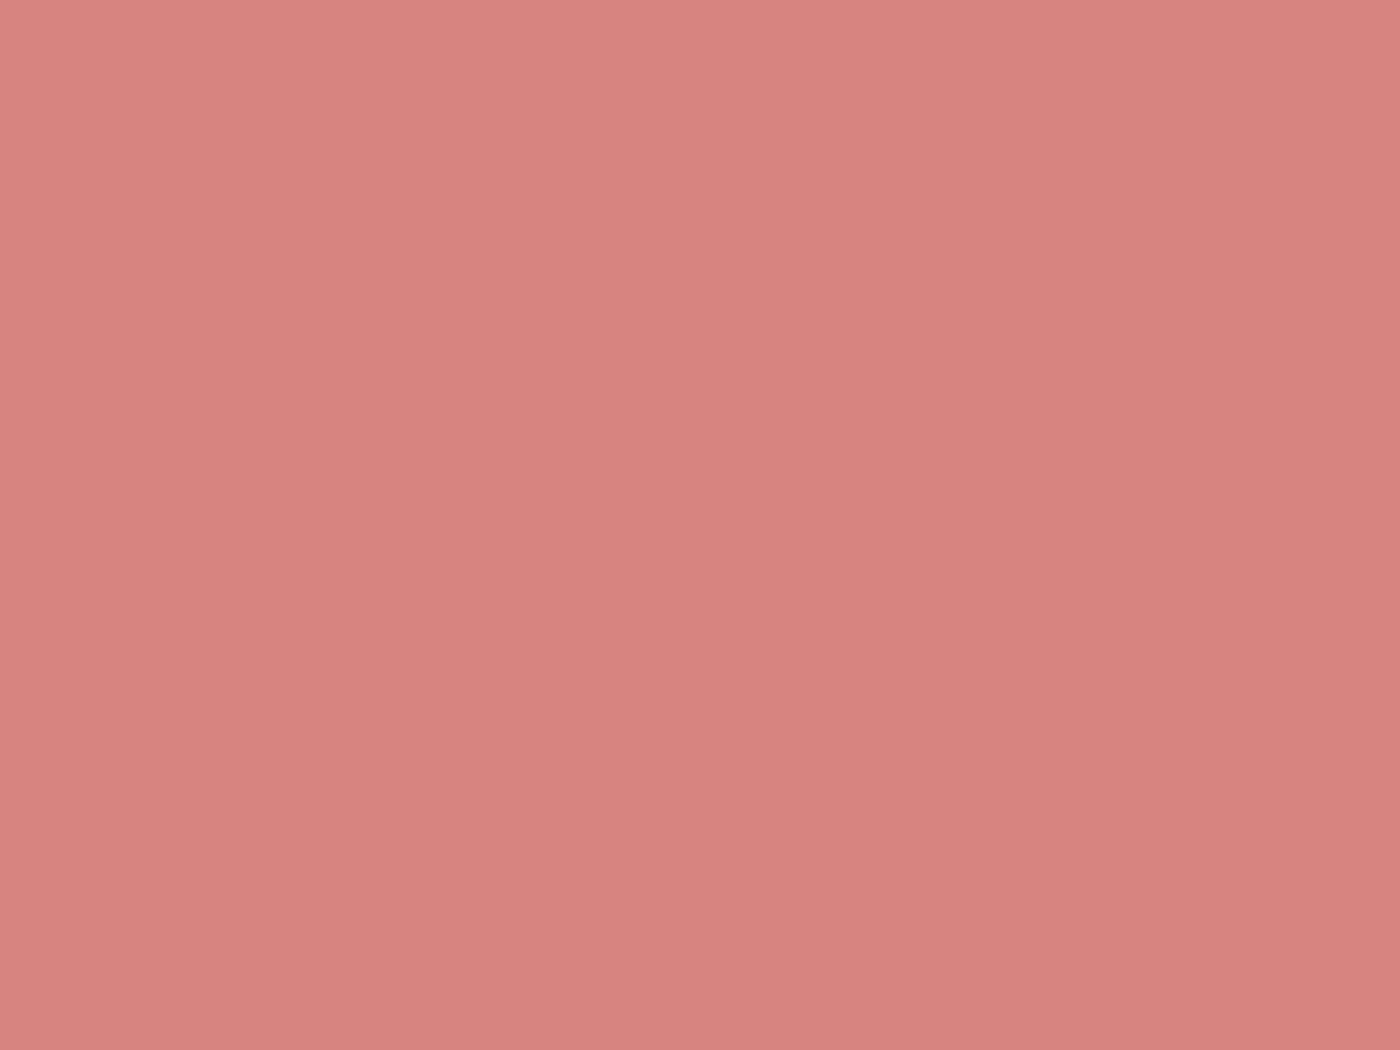 1400x1050 New York Pink Solid Color Background